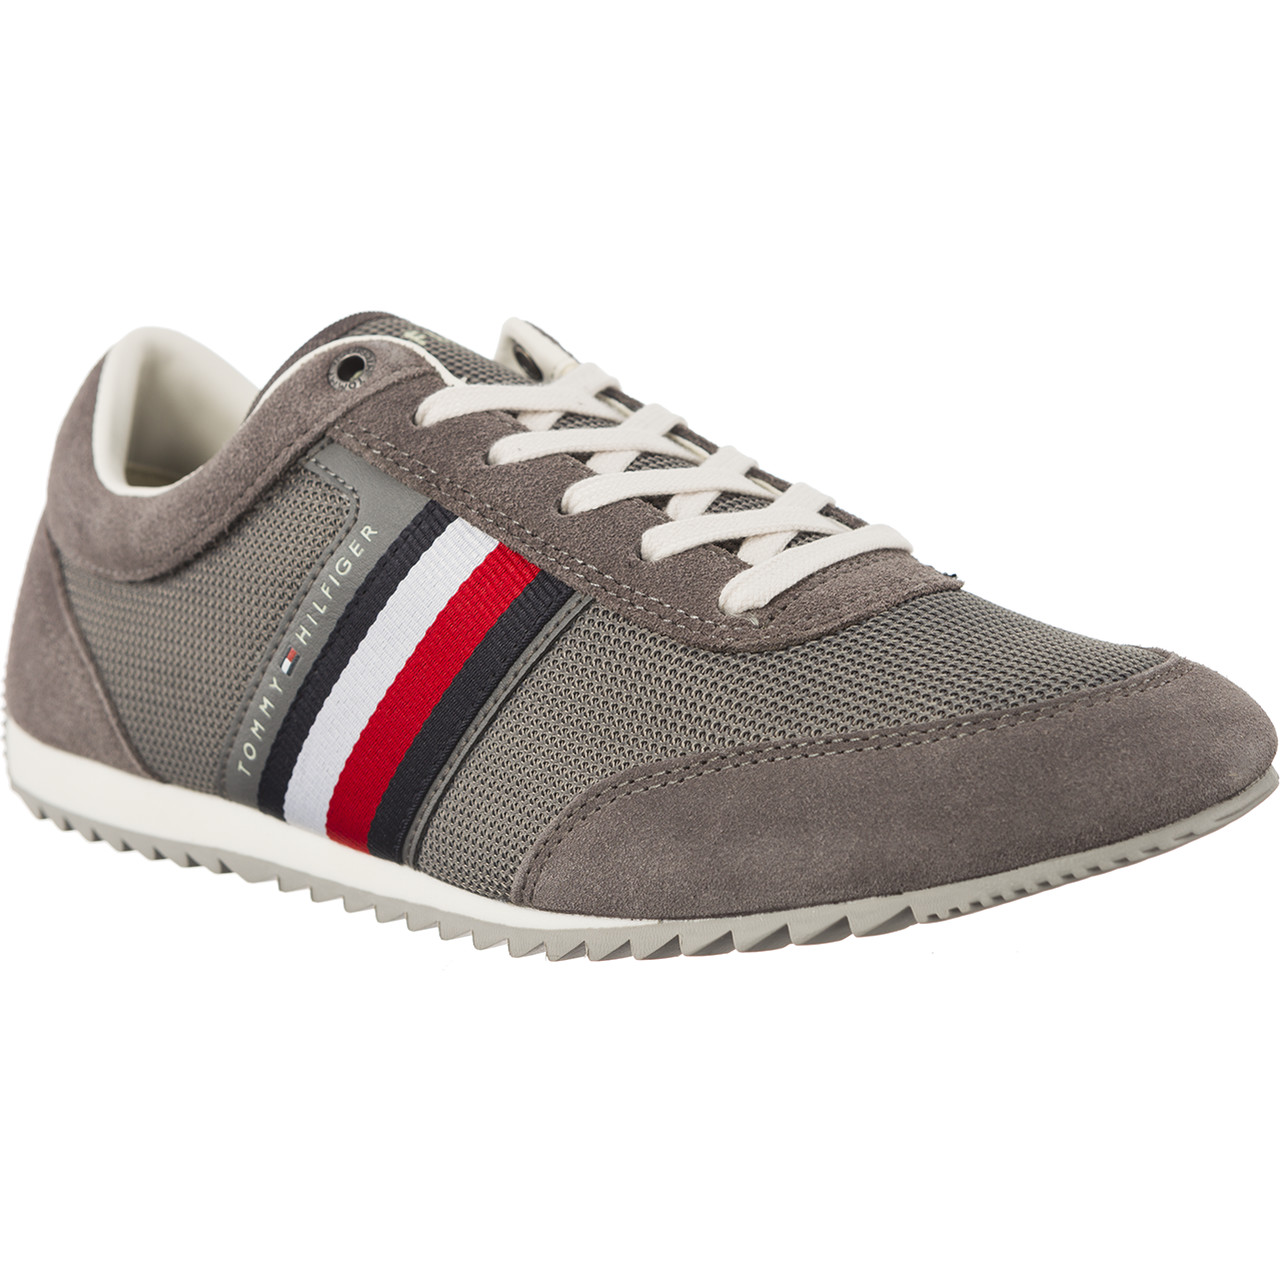 a1208c7b Buty Tommy Hilfiger <br/><small>CORPORATE MATERIAL MIX RUNNER 039 ...